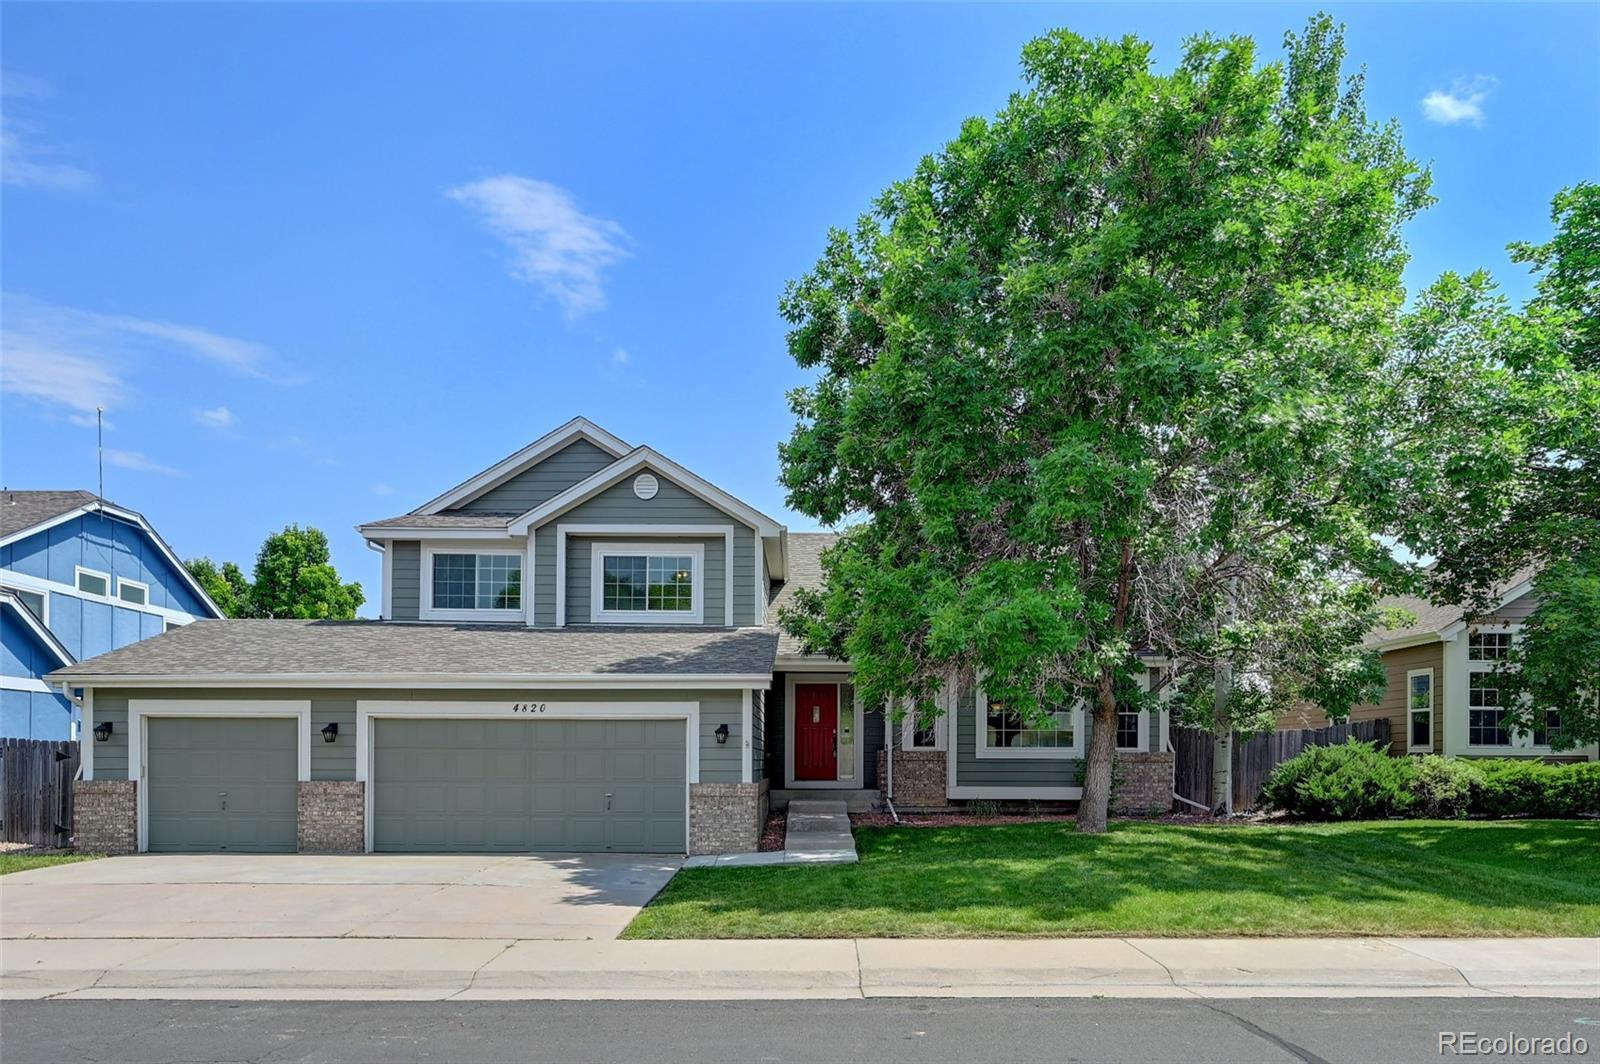 4820 W 127th Place, Broomfield, CO 80020 - #: 7990758